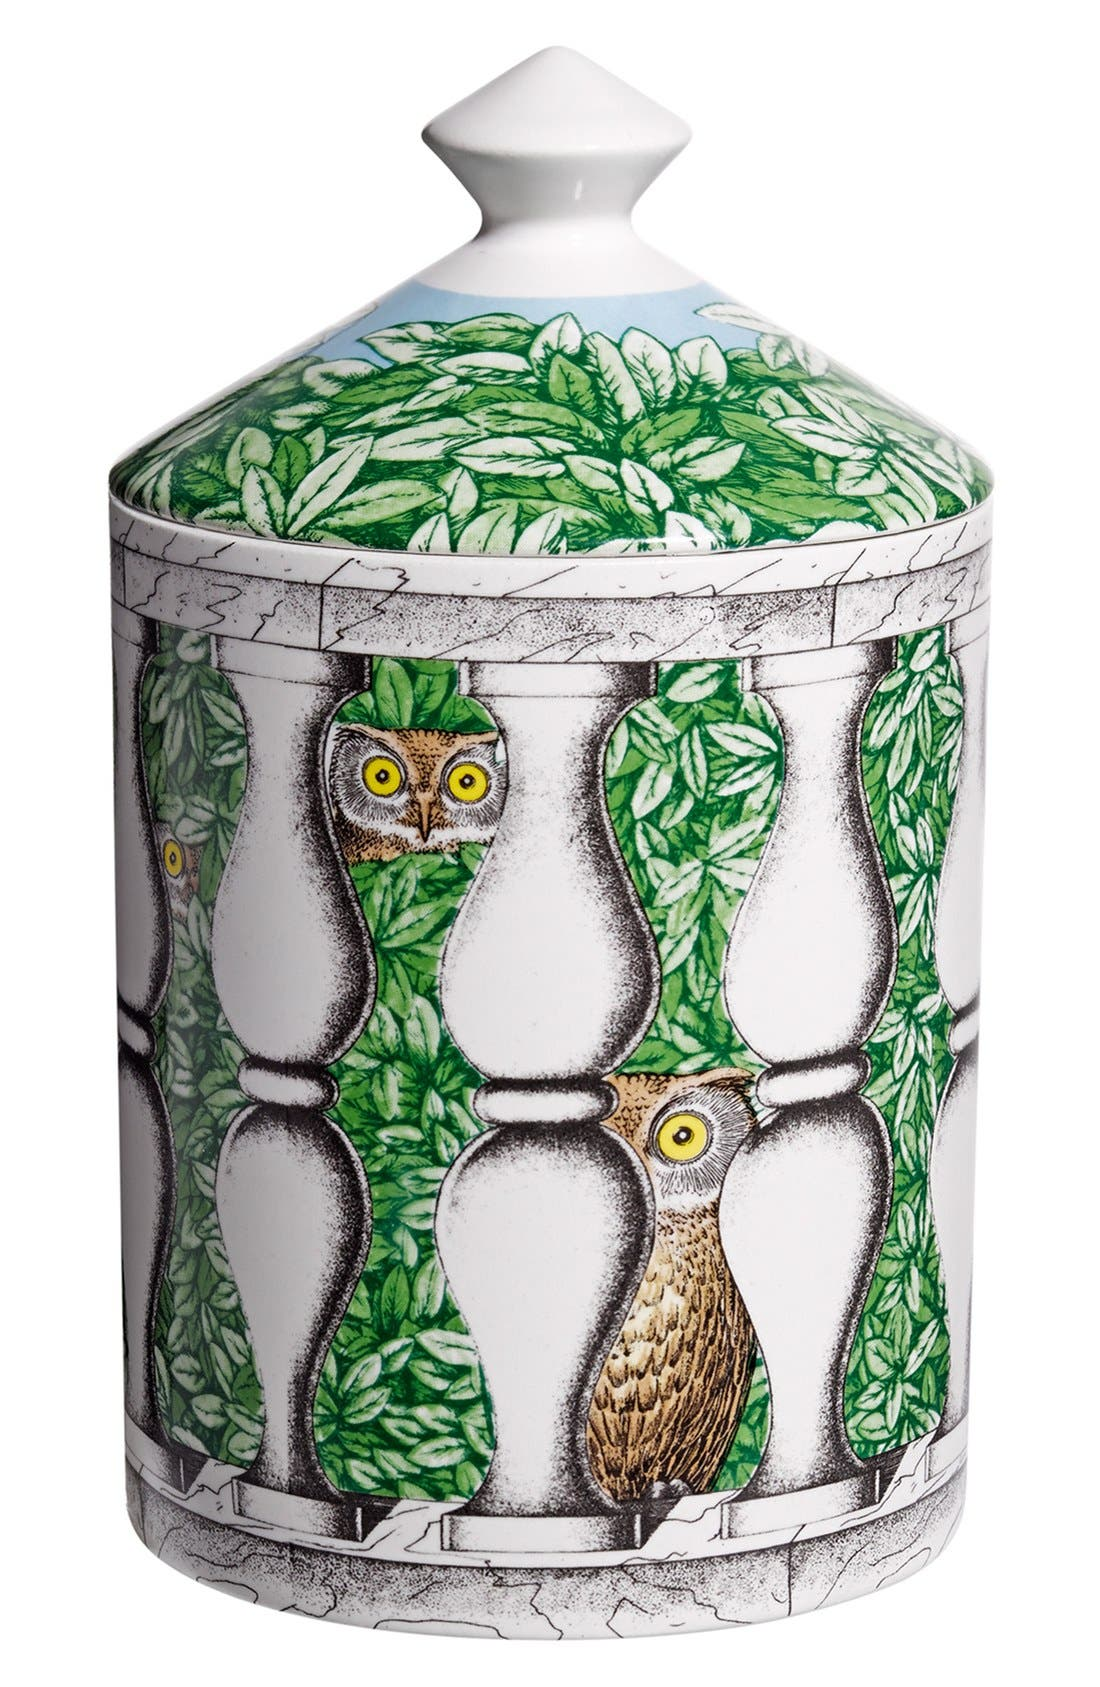 Alternate Image 1 Selected - Fornasetti 'Balaustra - Segretto' Lidded Candle